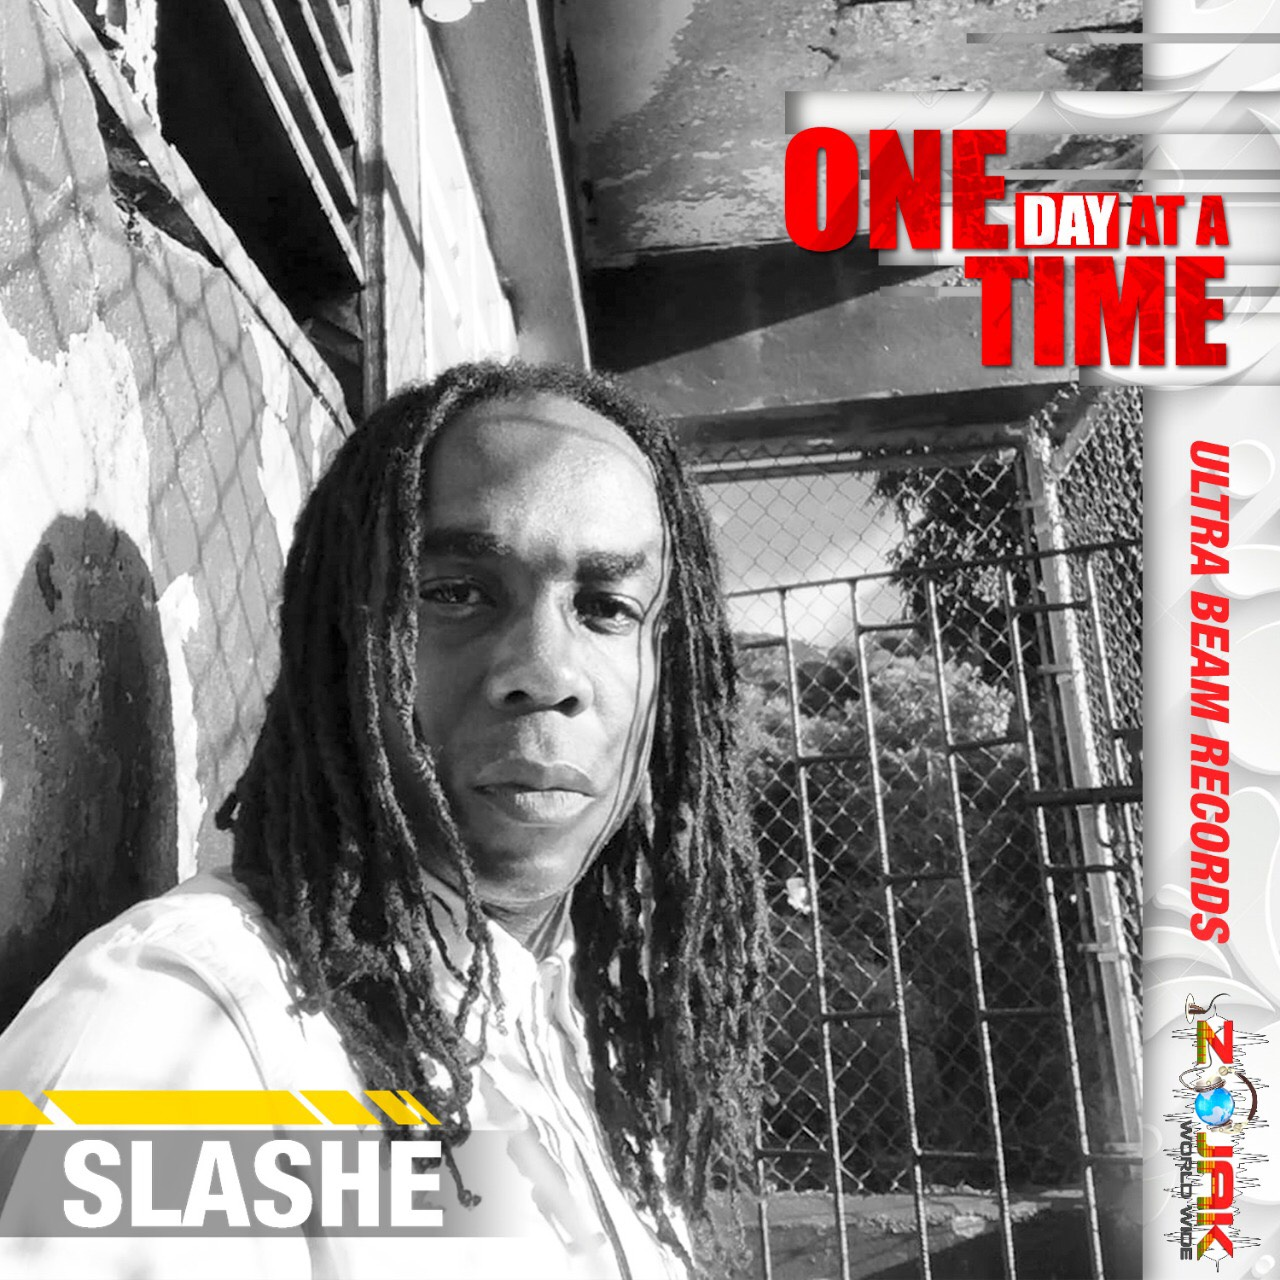 Slashe - One Day At A Time